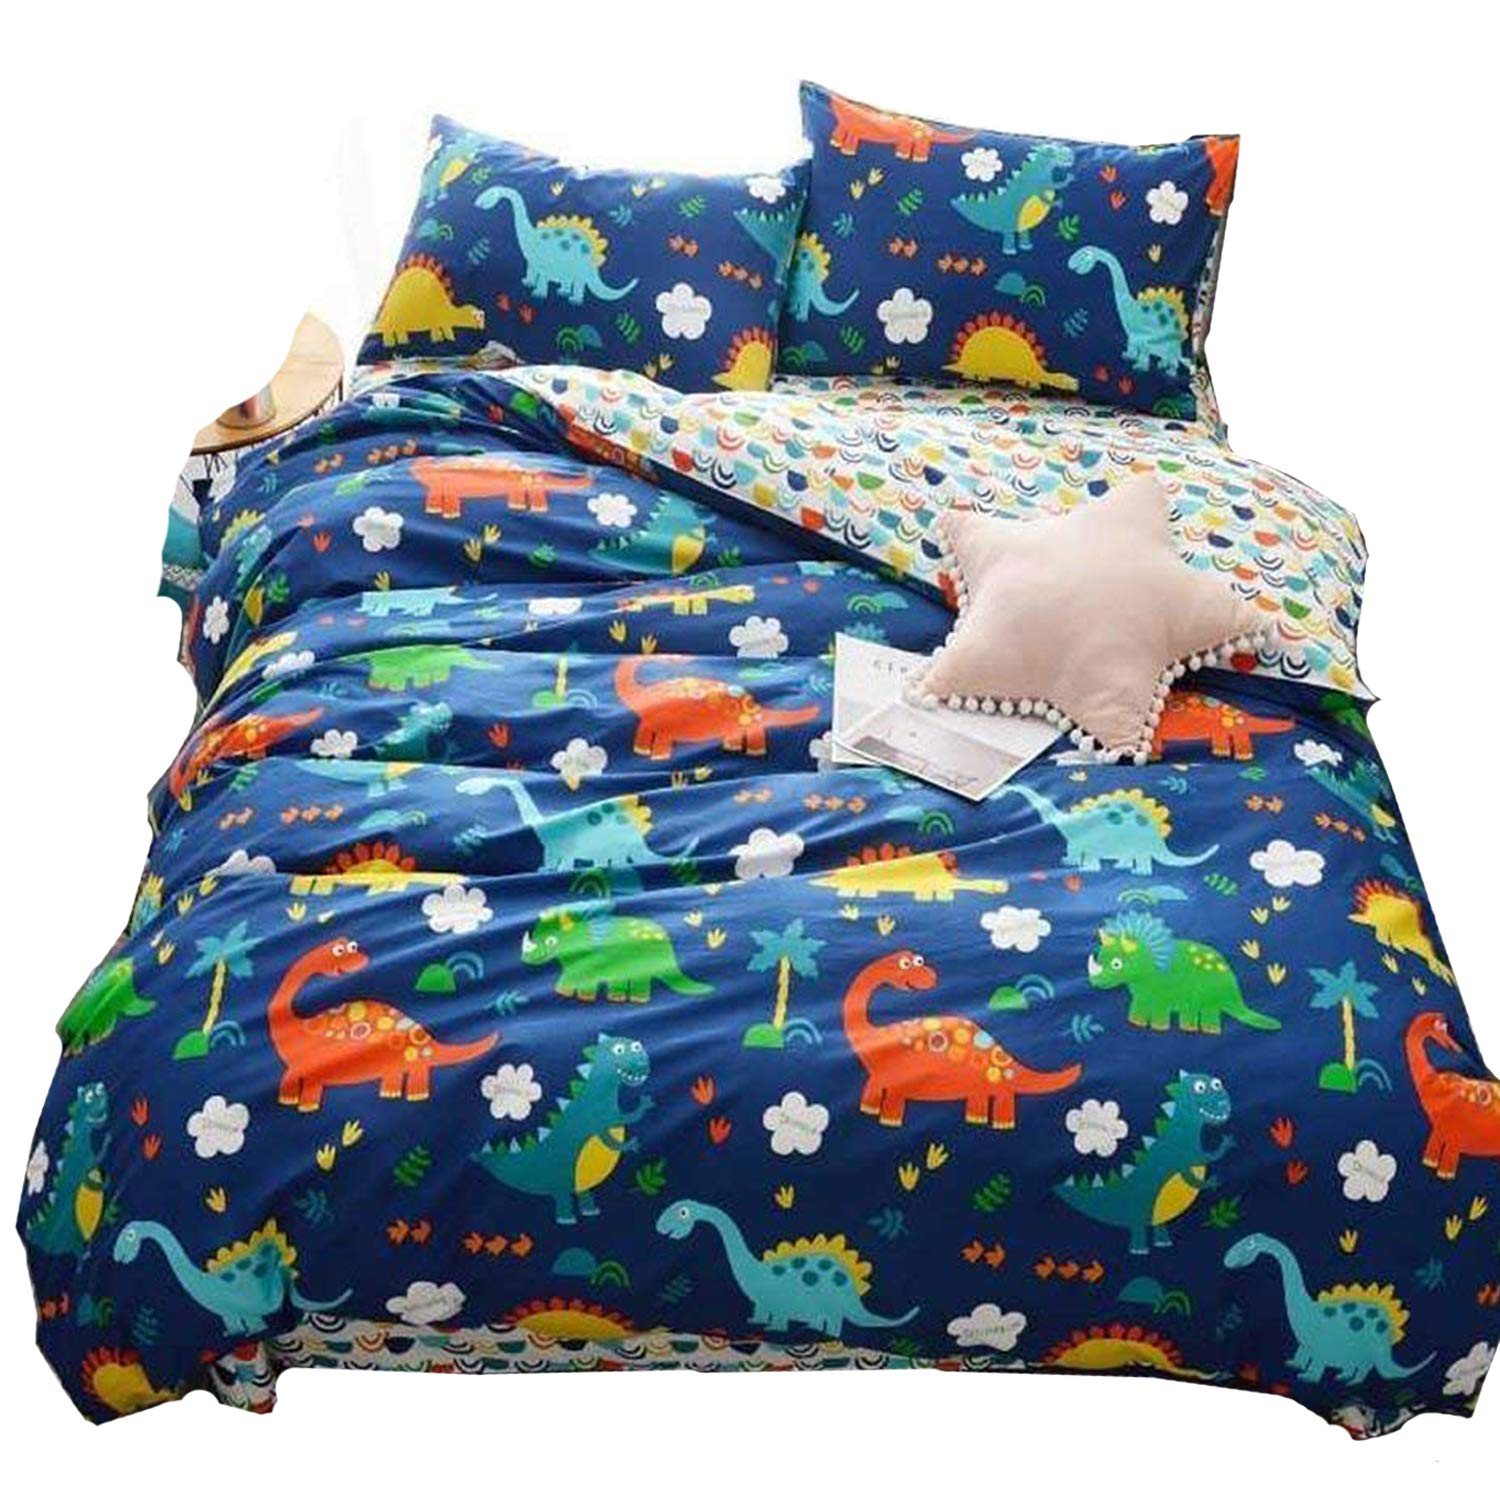 karever 100% Cotton Duvet Cover Set Pattern Soft Twin Size 3 Piece Cartoon Reversible Blue Bears Bedding Sets Queen Size with Zipper Closure Corner Ties for Teens Little Boys